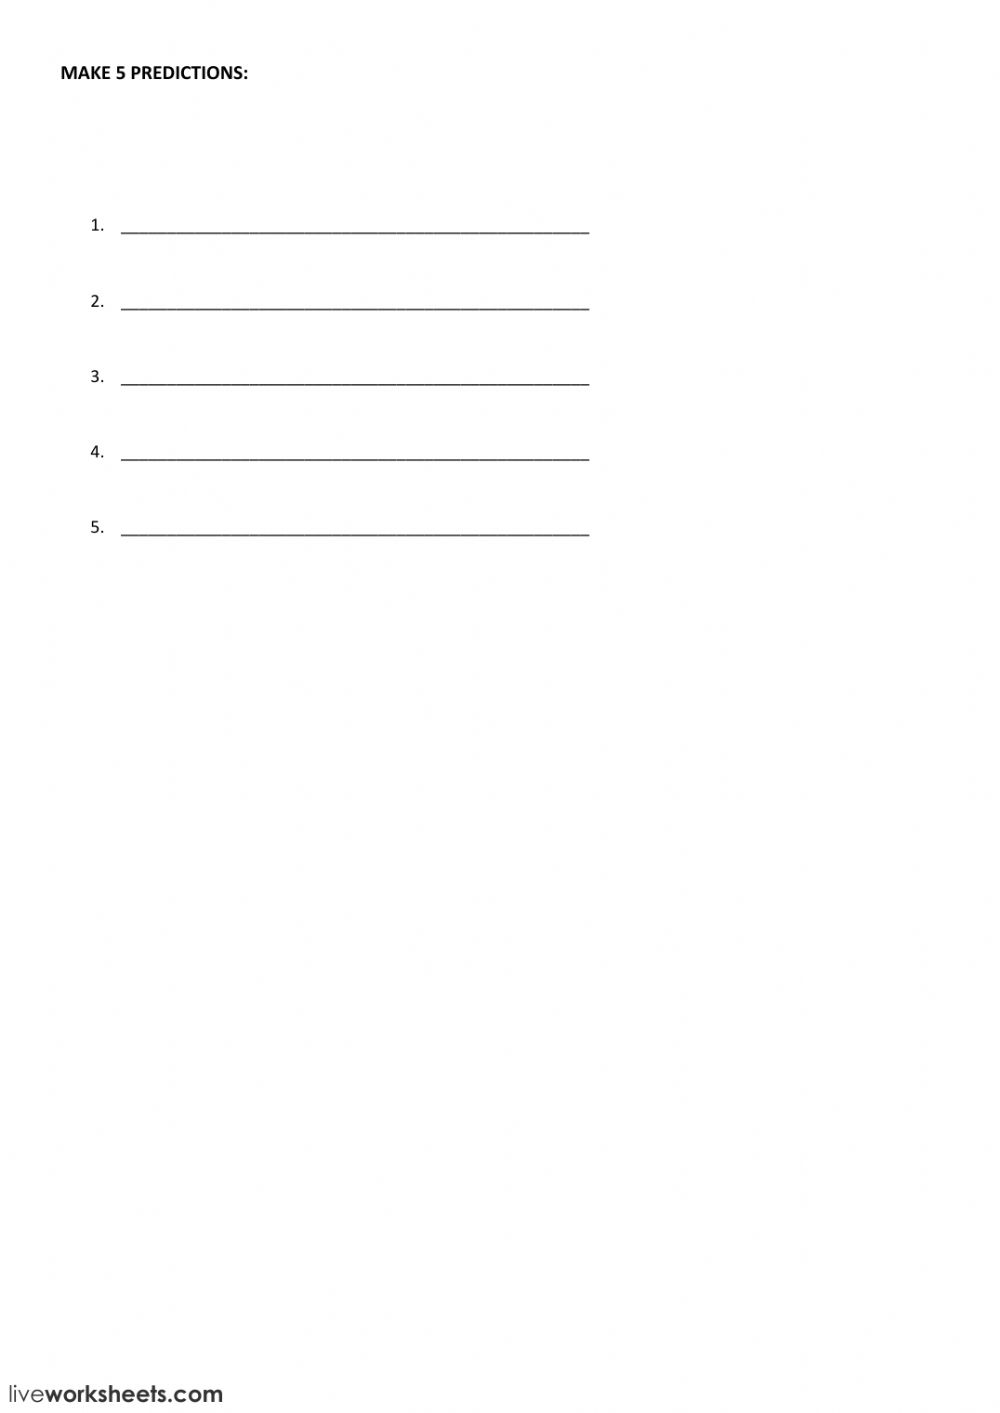 Going to predictions - Interactive worksheet